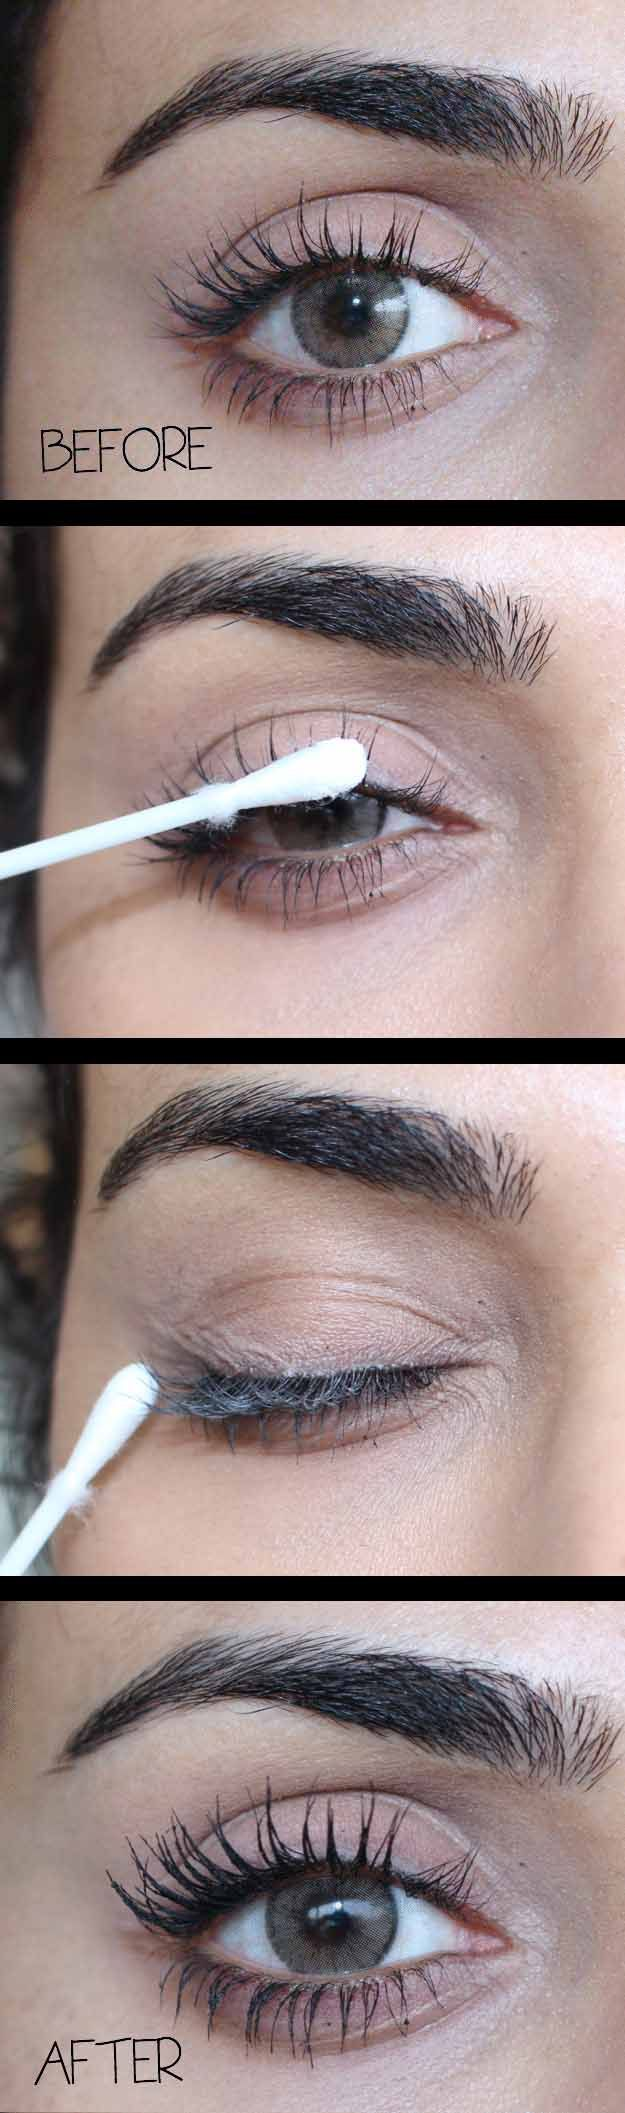 Ways to Get the Best Eyelashes Ever - Baby Powder for Seriously Voluminous Lashes - Step By Step Tutorials for DIY Eyelashes, Drugstore and Name Brand Products. Includes Natural, Fake, False, and Extensions Tutorials. These are Quick And Easy And Simple. You Can Use A Curler, Glue, Serum, And Primer. Beauty Tips and Tricks, Instructions Makeup - Mascara and eyelash and eyelashes - http://thegoddess.com/get-best-eyelashes